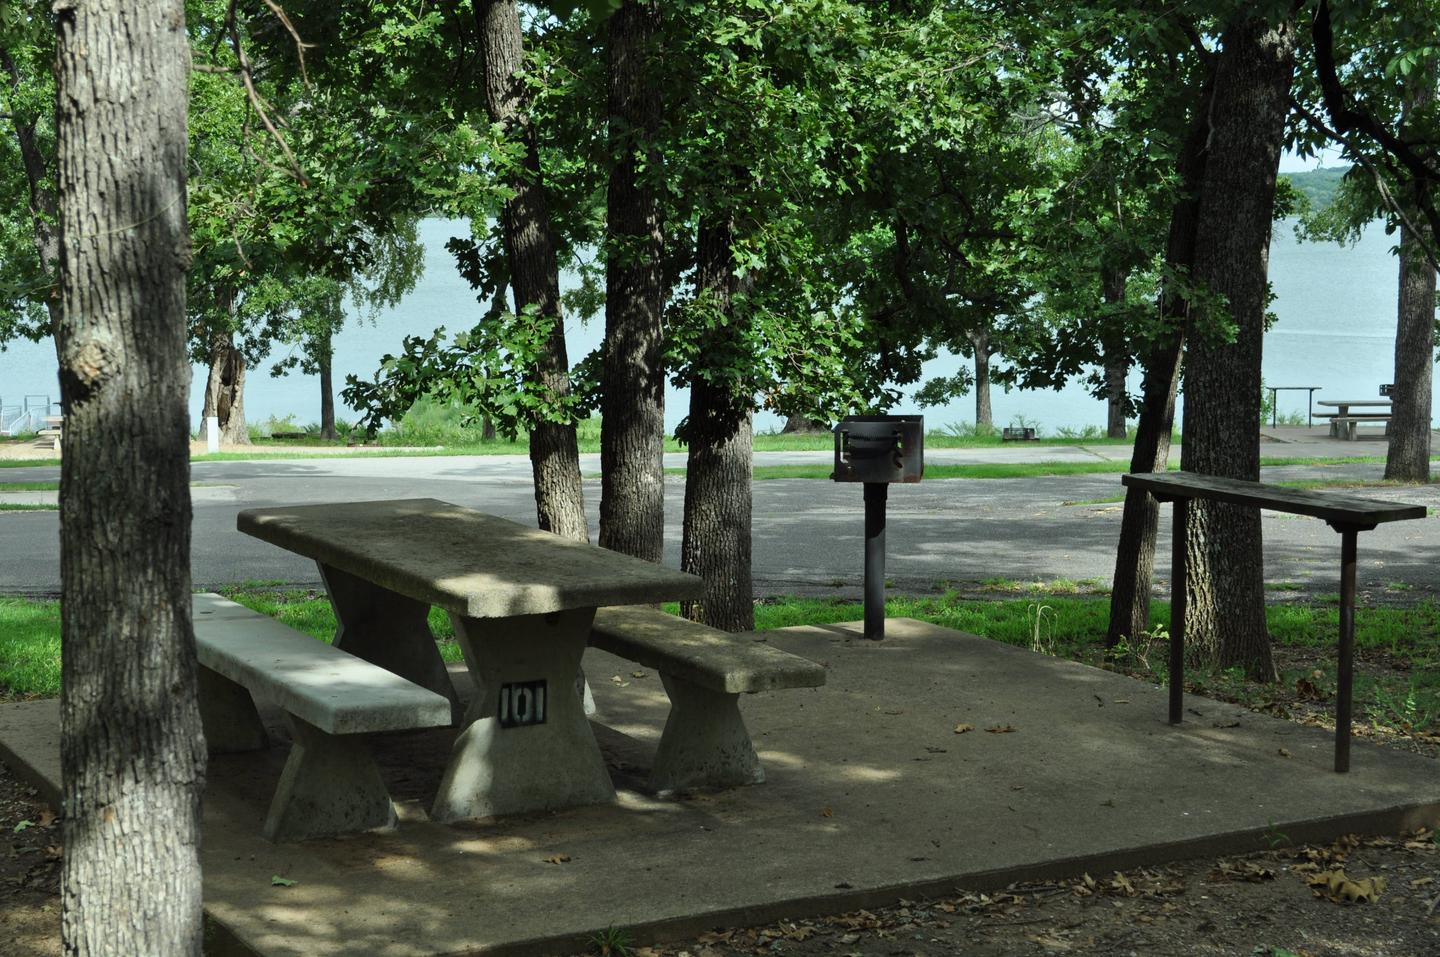 Site 101 table and impact area - Taylor FerrySite 101 has shaded picnic area and a decent view of the lake.  It is also located near the boat ramp and courtesy dock.  Parking for extra vehicles and equipment is limited due to the proximity of other campsites.